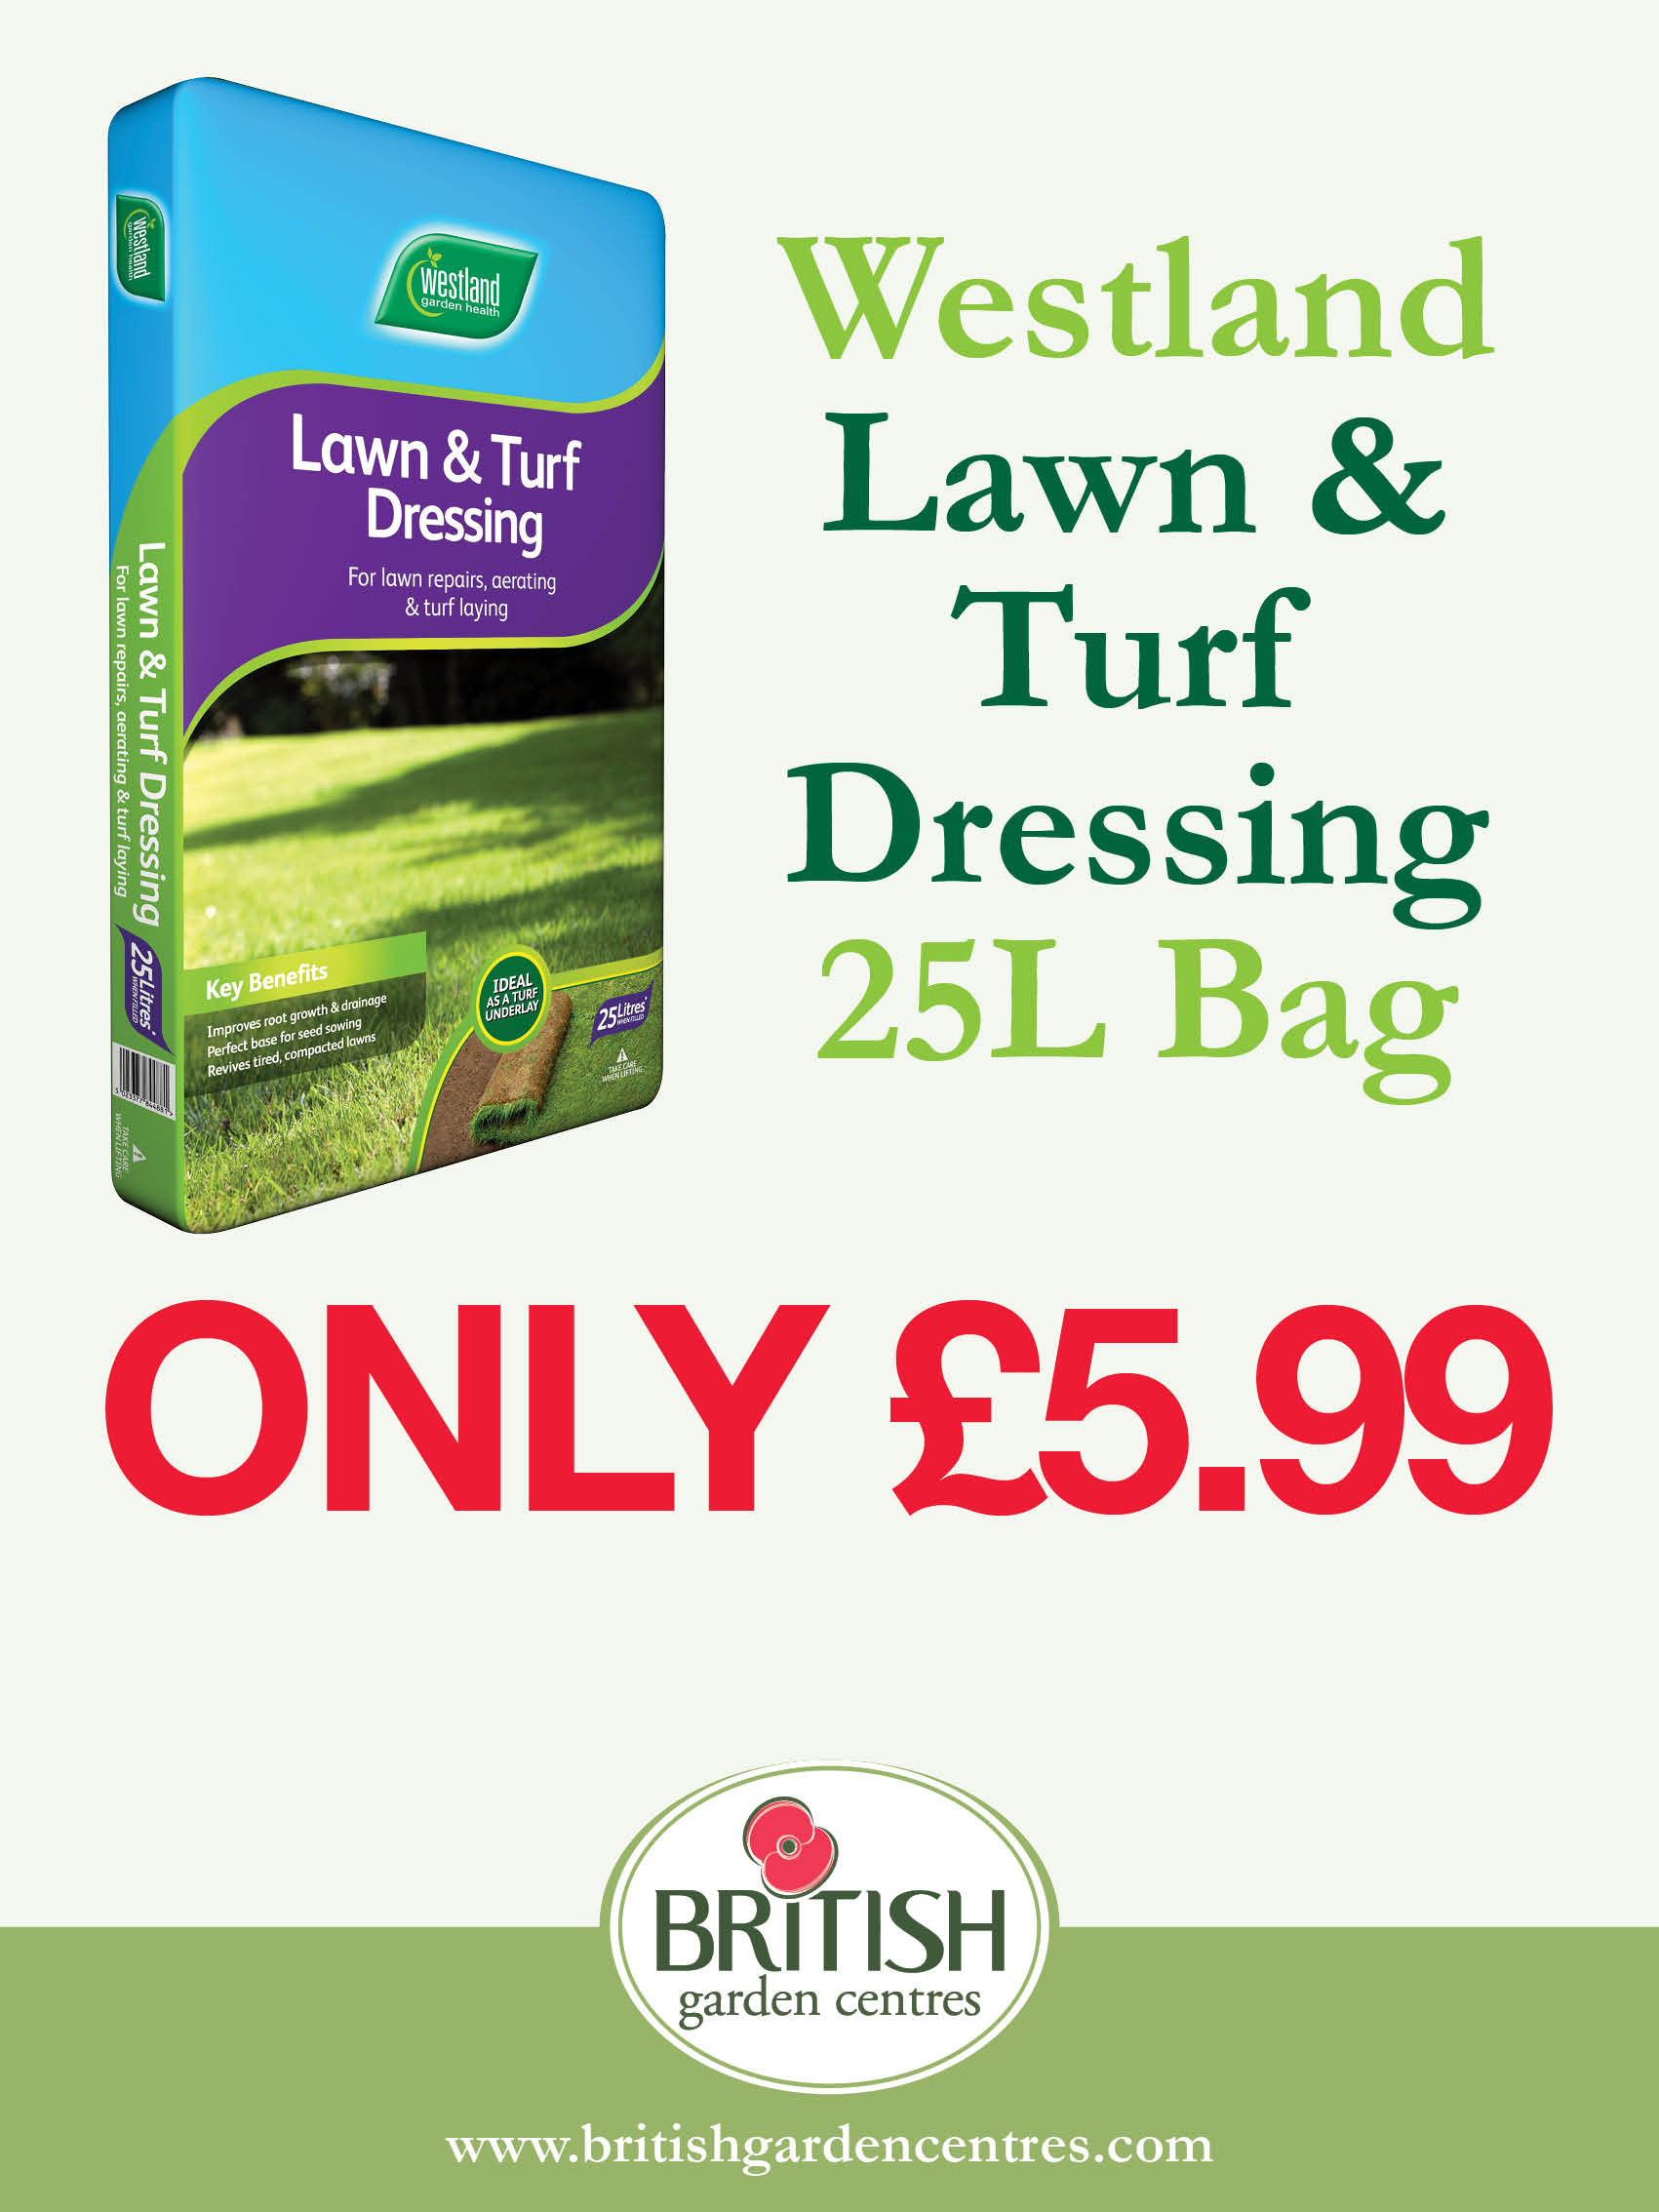 Westland Lawn and Turf Dressing 25L